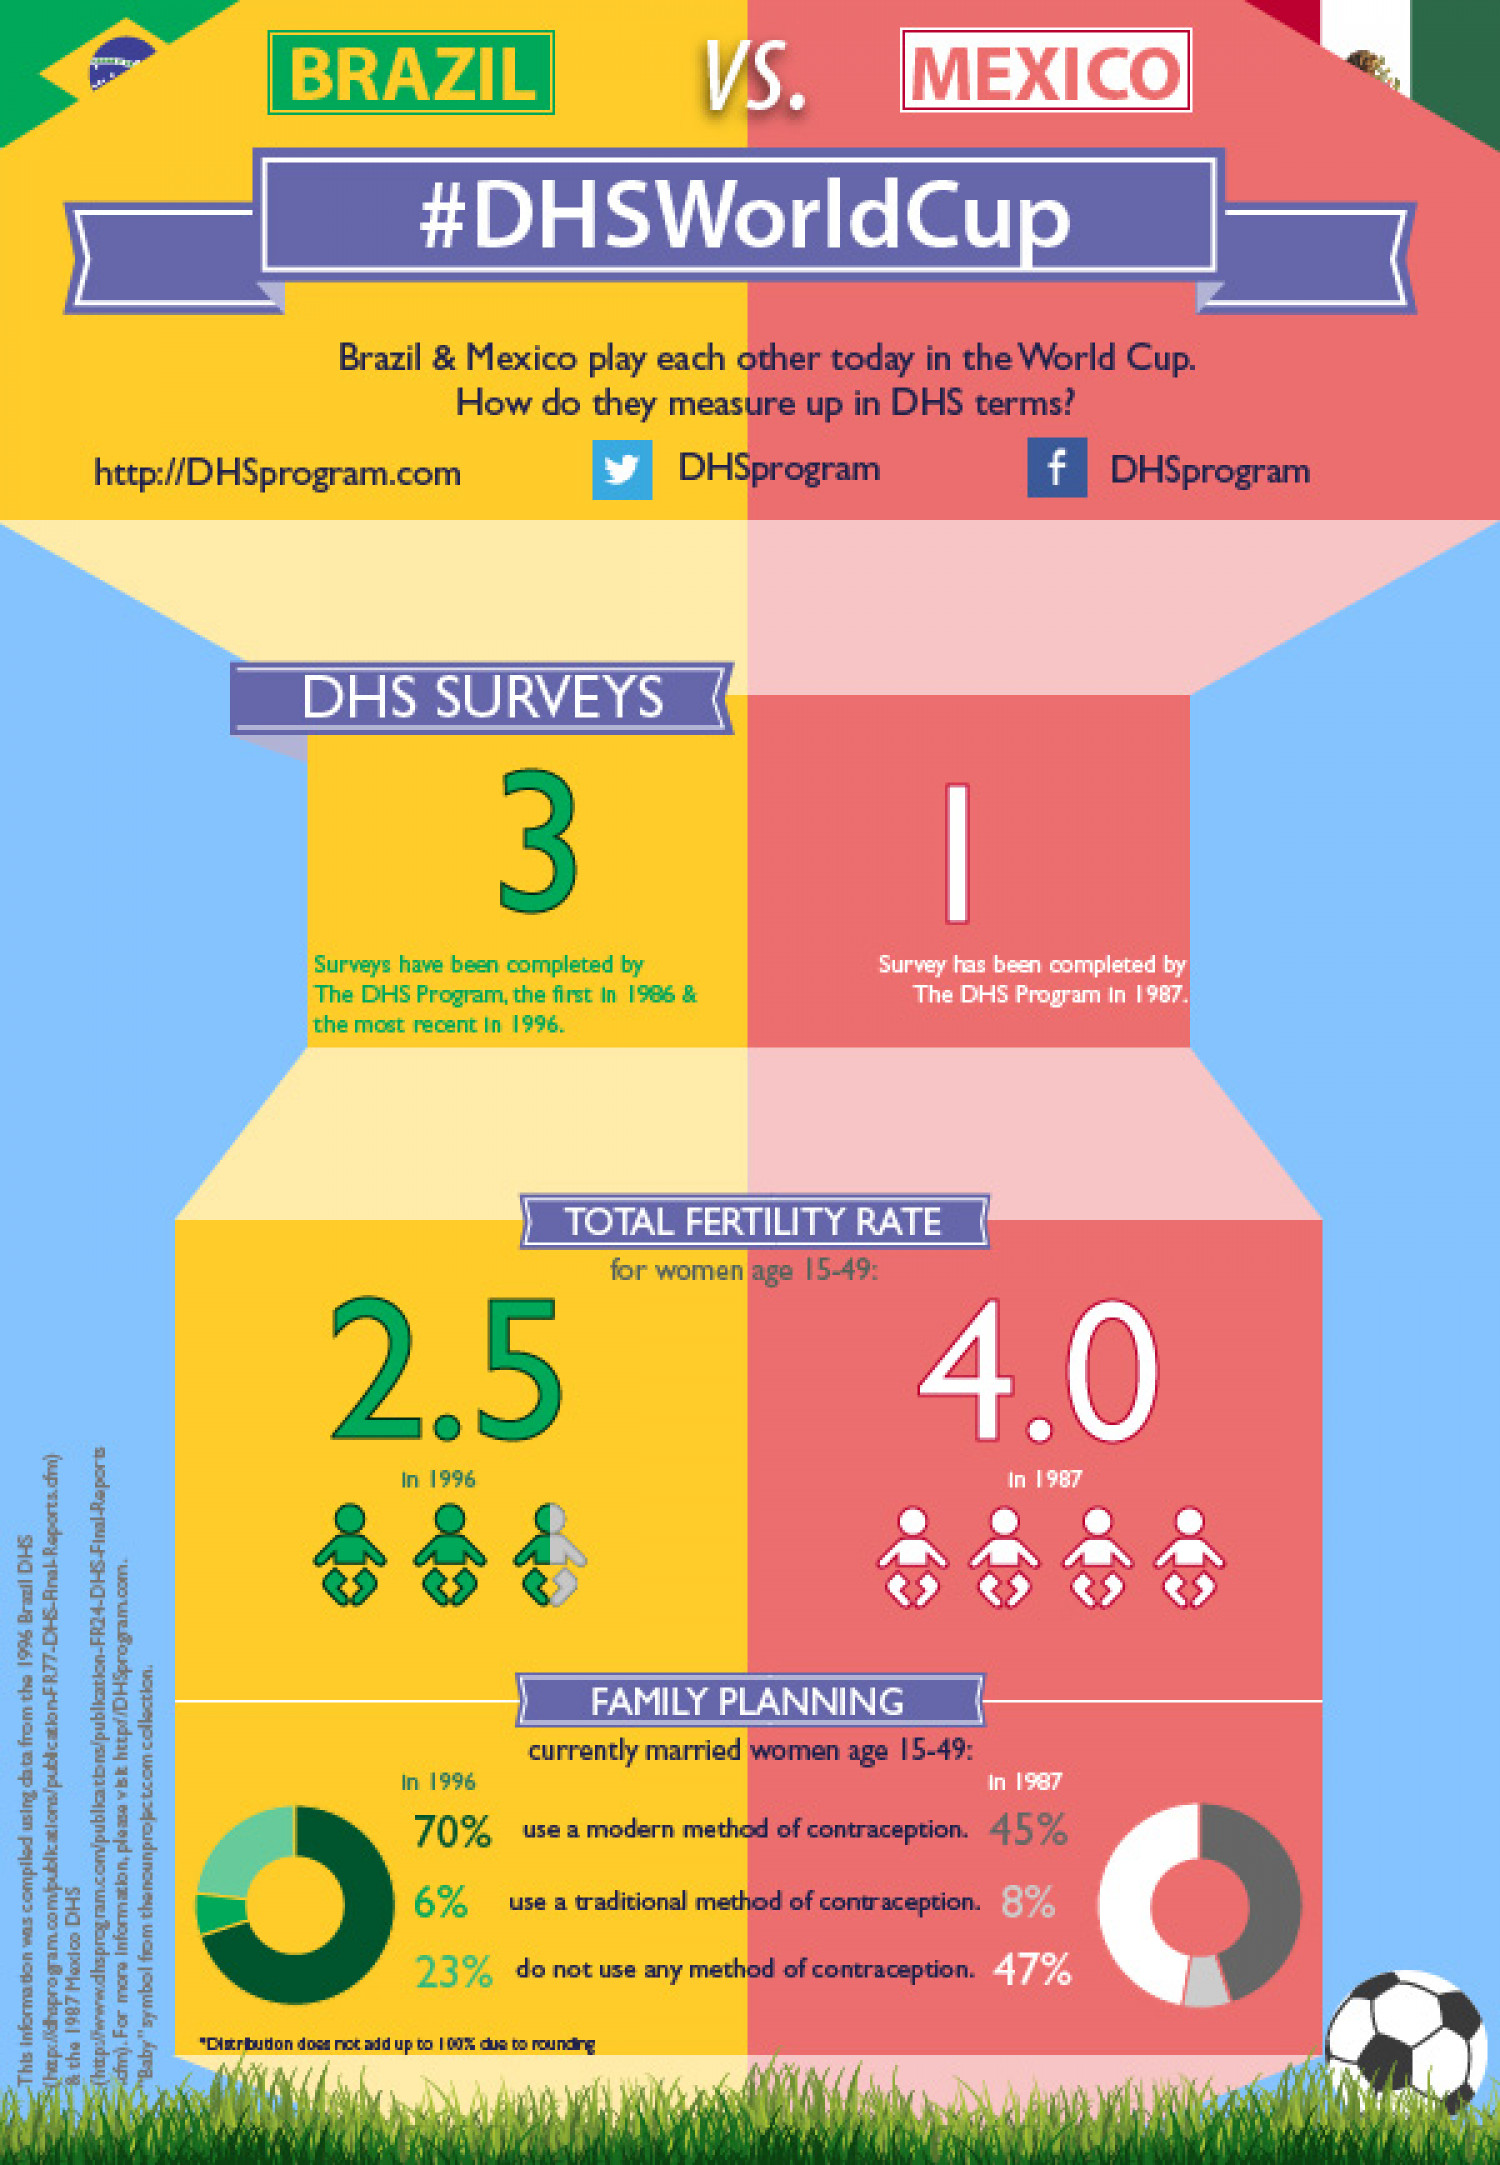 #DHSWorldCup: Mexico vs. Brazil Infographic